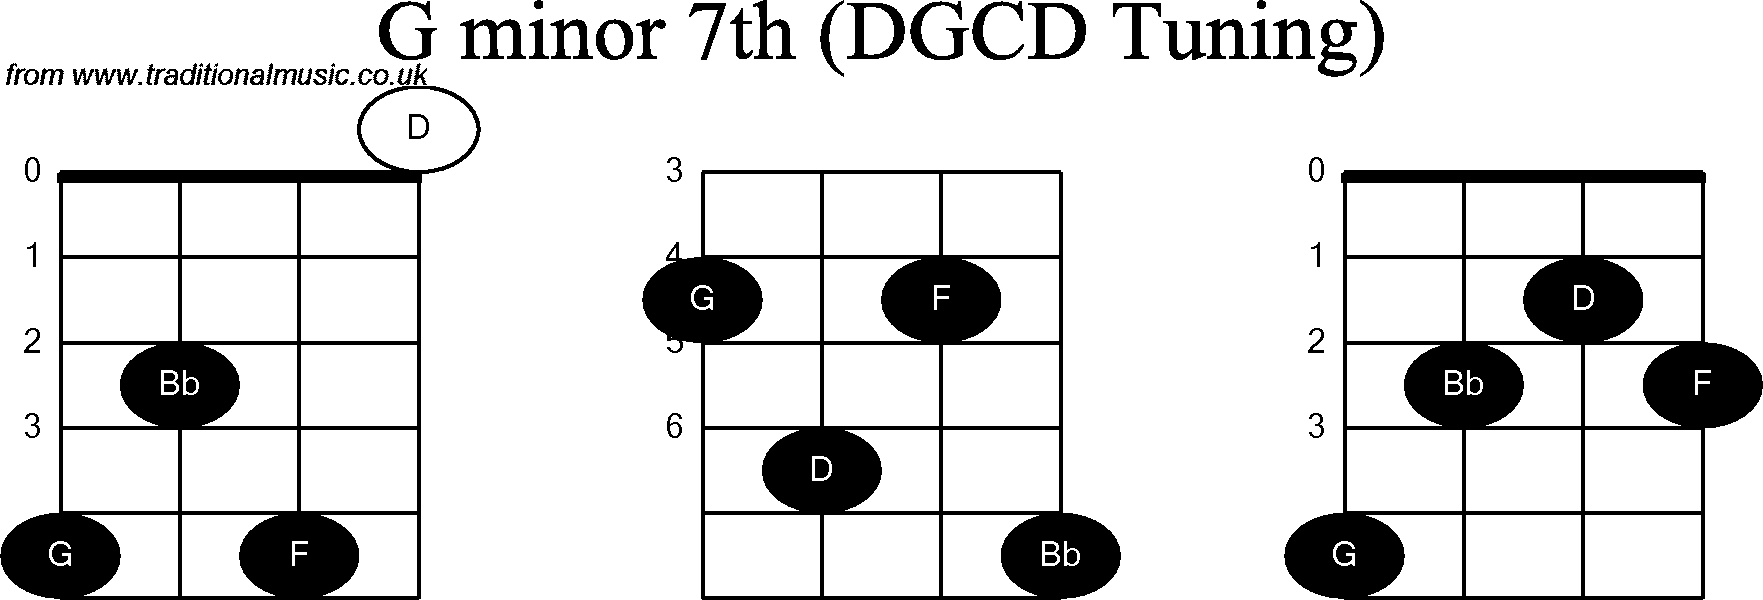 Chord diagrams for: Banjo(G Modal) G Minor7th